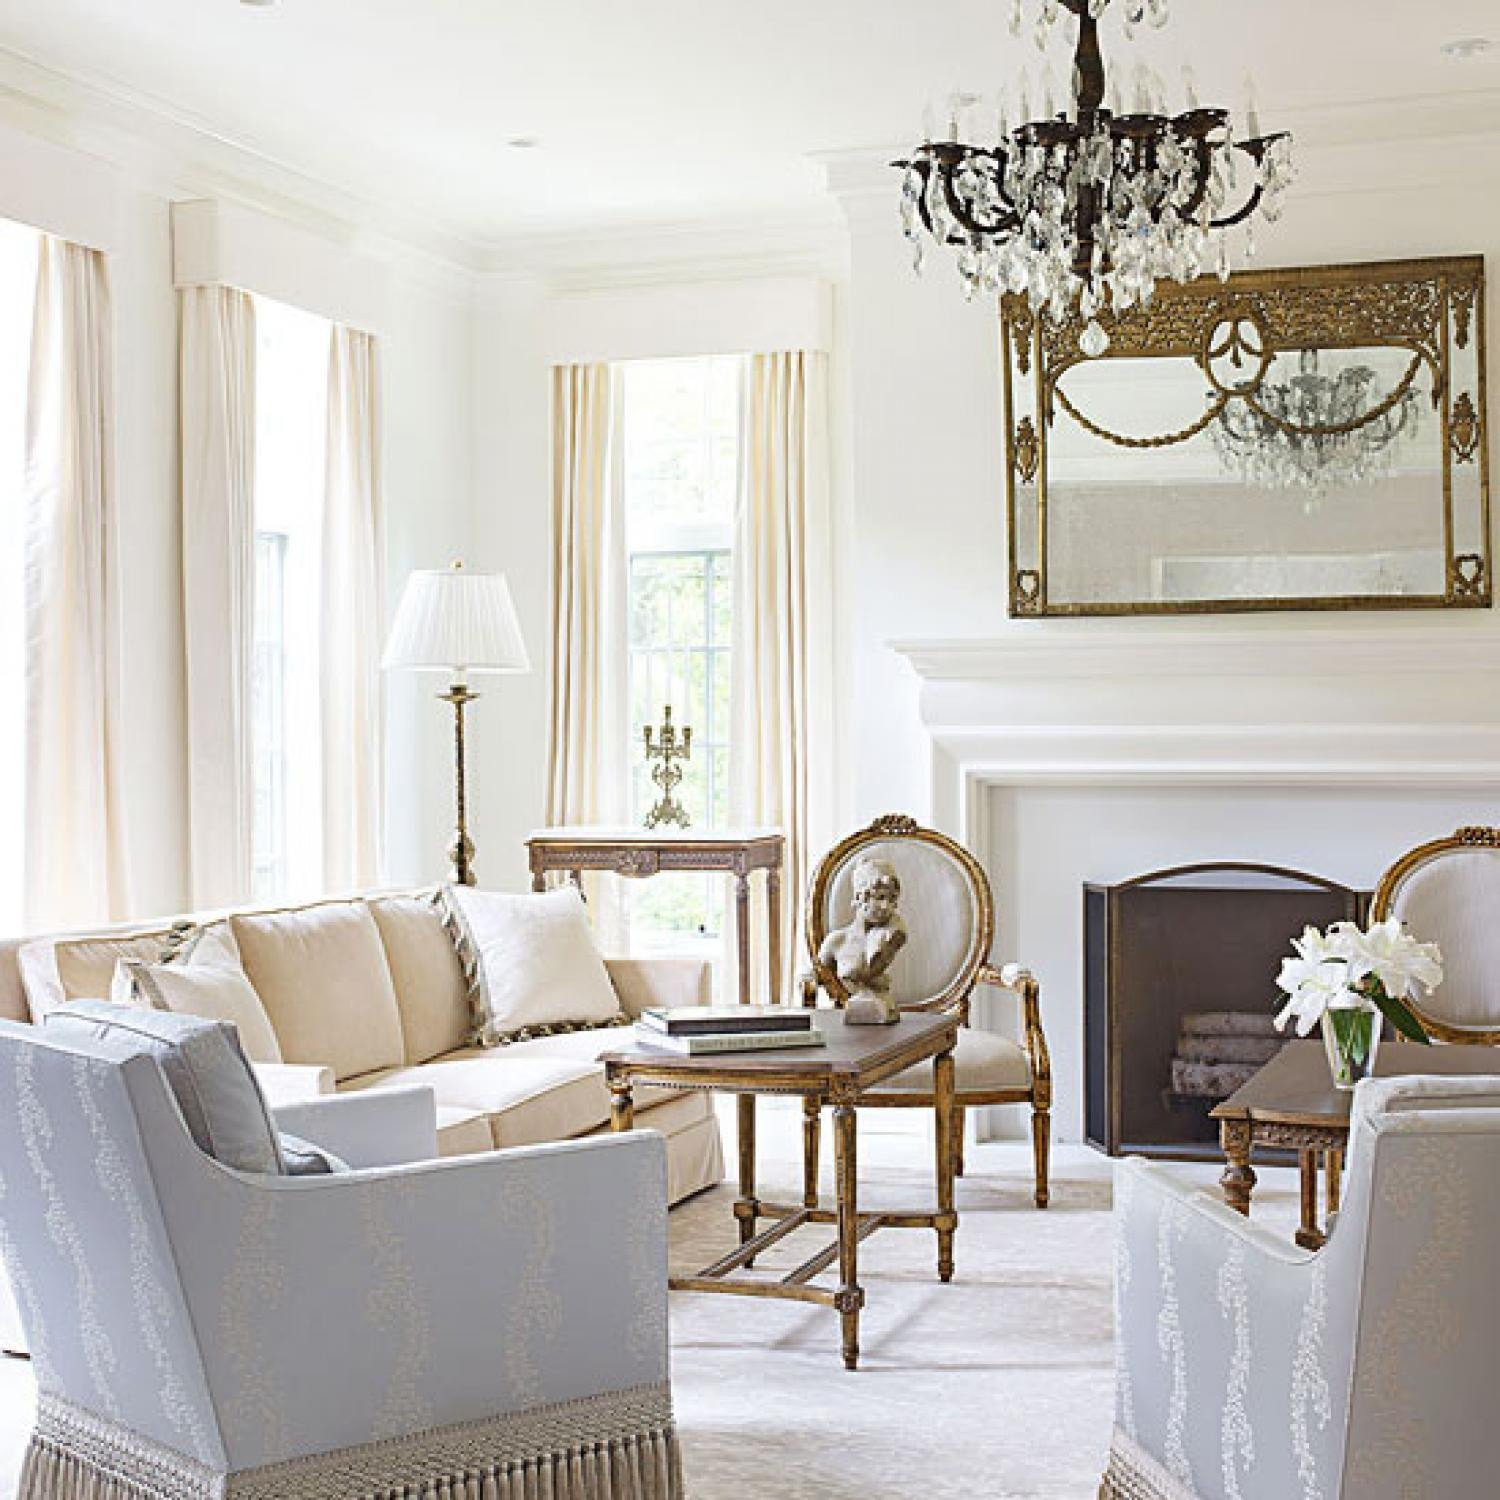 Living Room Traditional Home Beautiful Bright White and Inviting Family Home